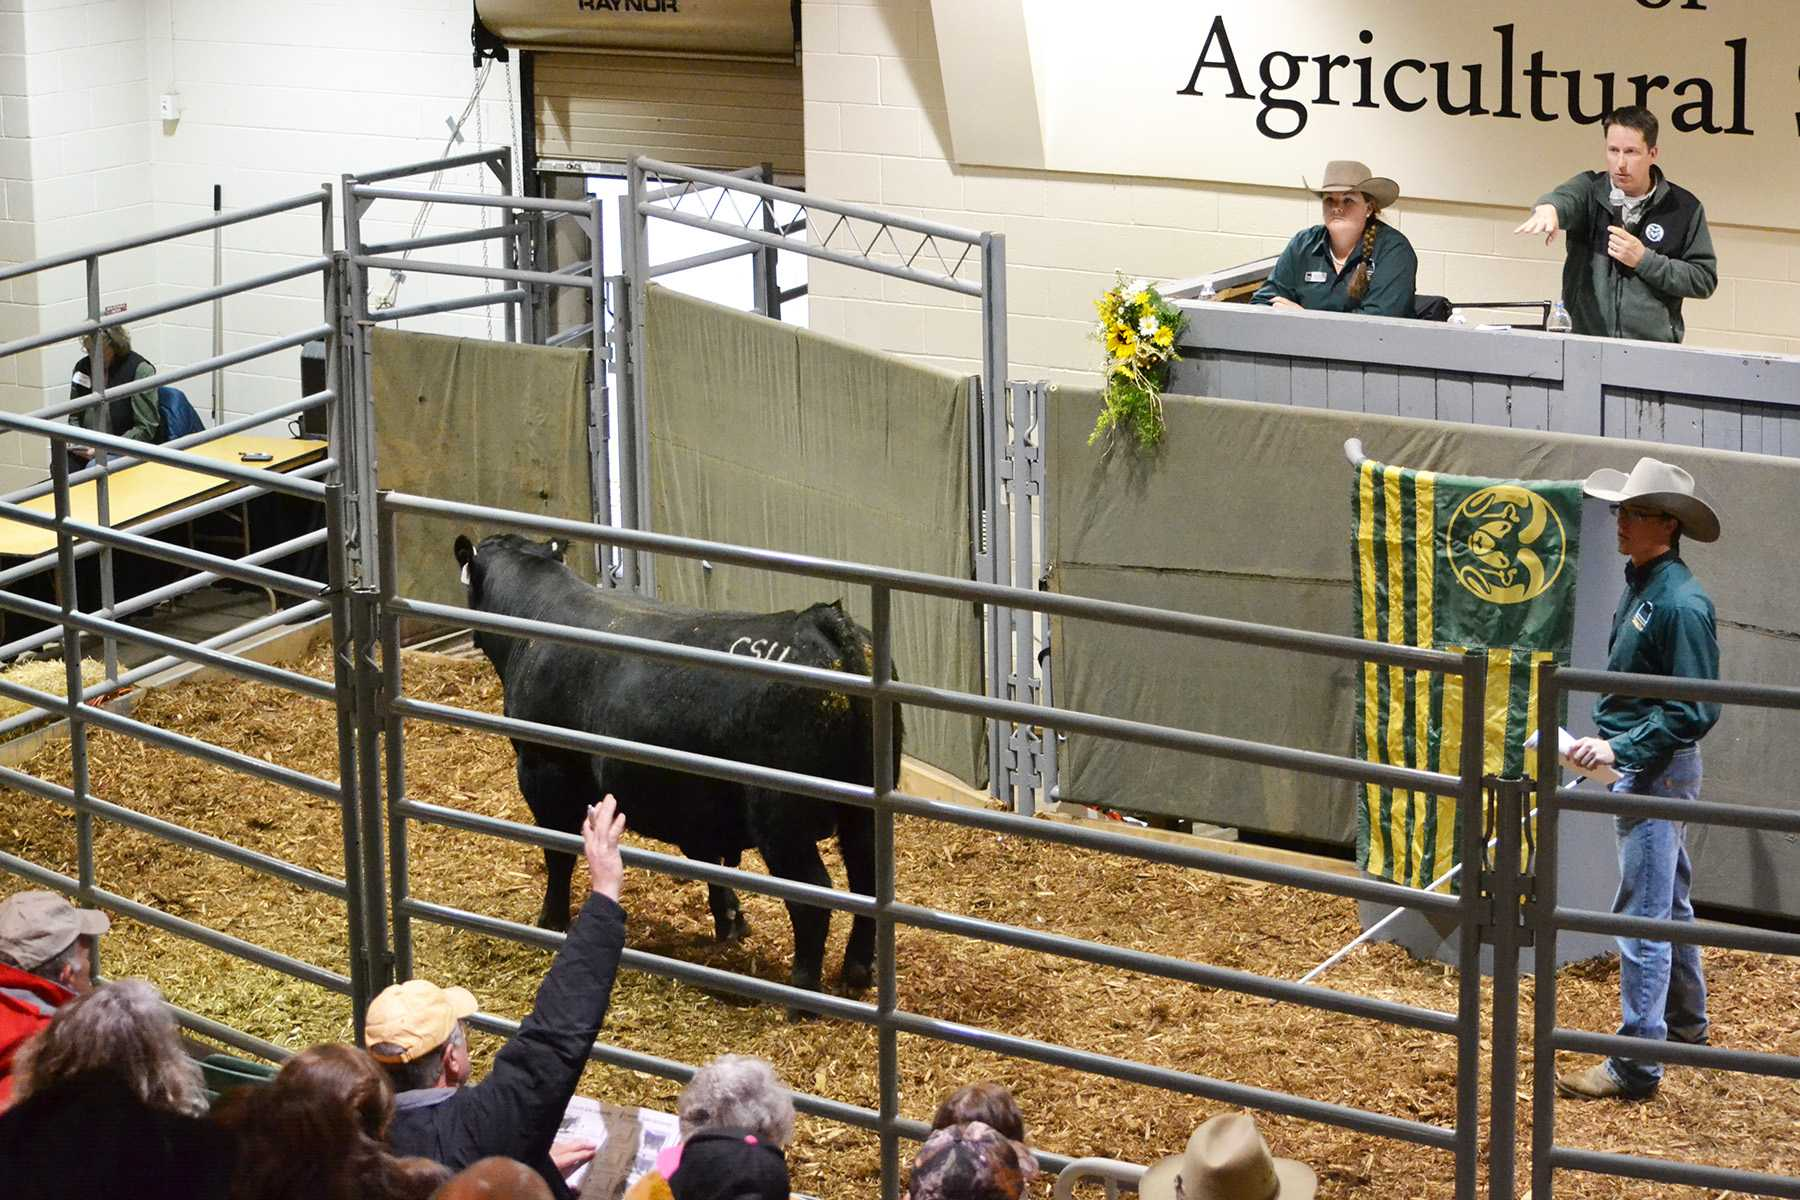 Seedstock Merchandising Team member Kim Rounds assists Dr. Jason Ahola during CSU's 38th Annual ARDEC Bull Sale. Meanwhile, Seedstock Merchandising Team member Carson Guenzi moves the bulls around the pen pointing out the current lot number to buyers in the audience.